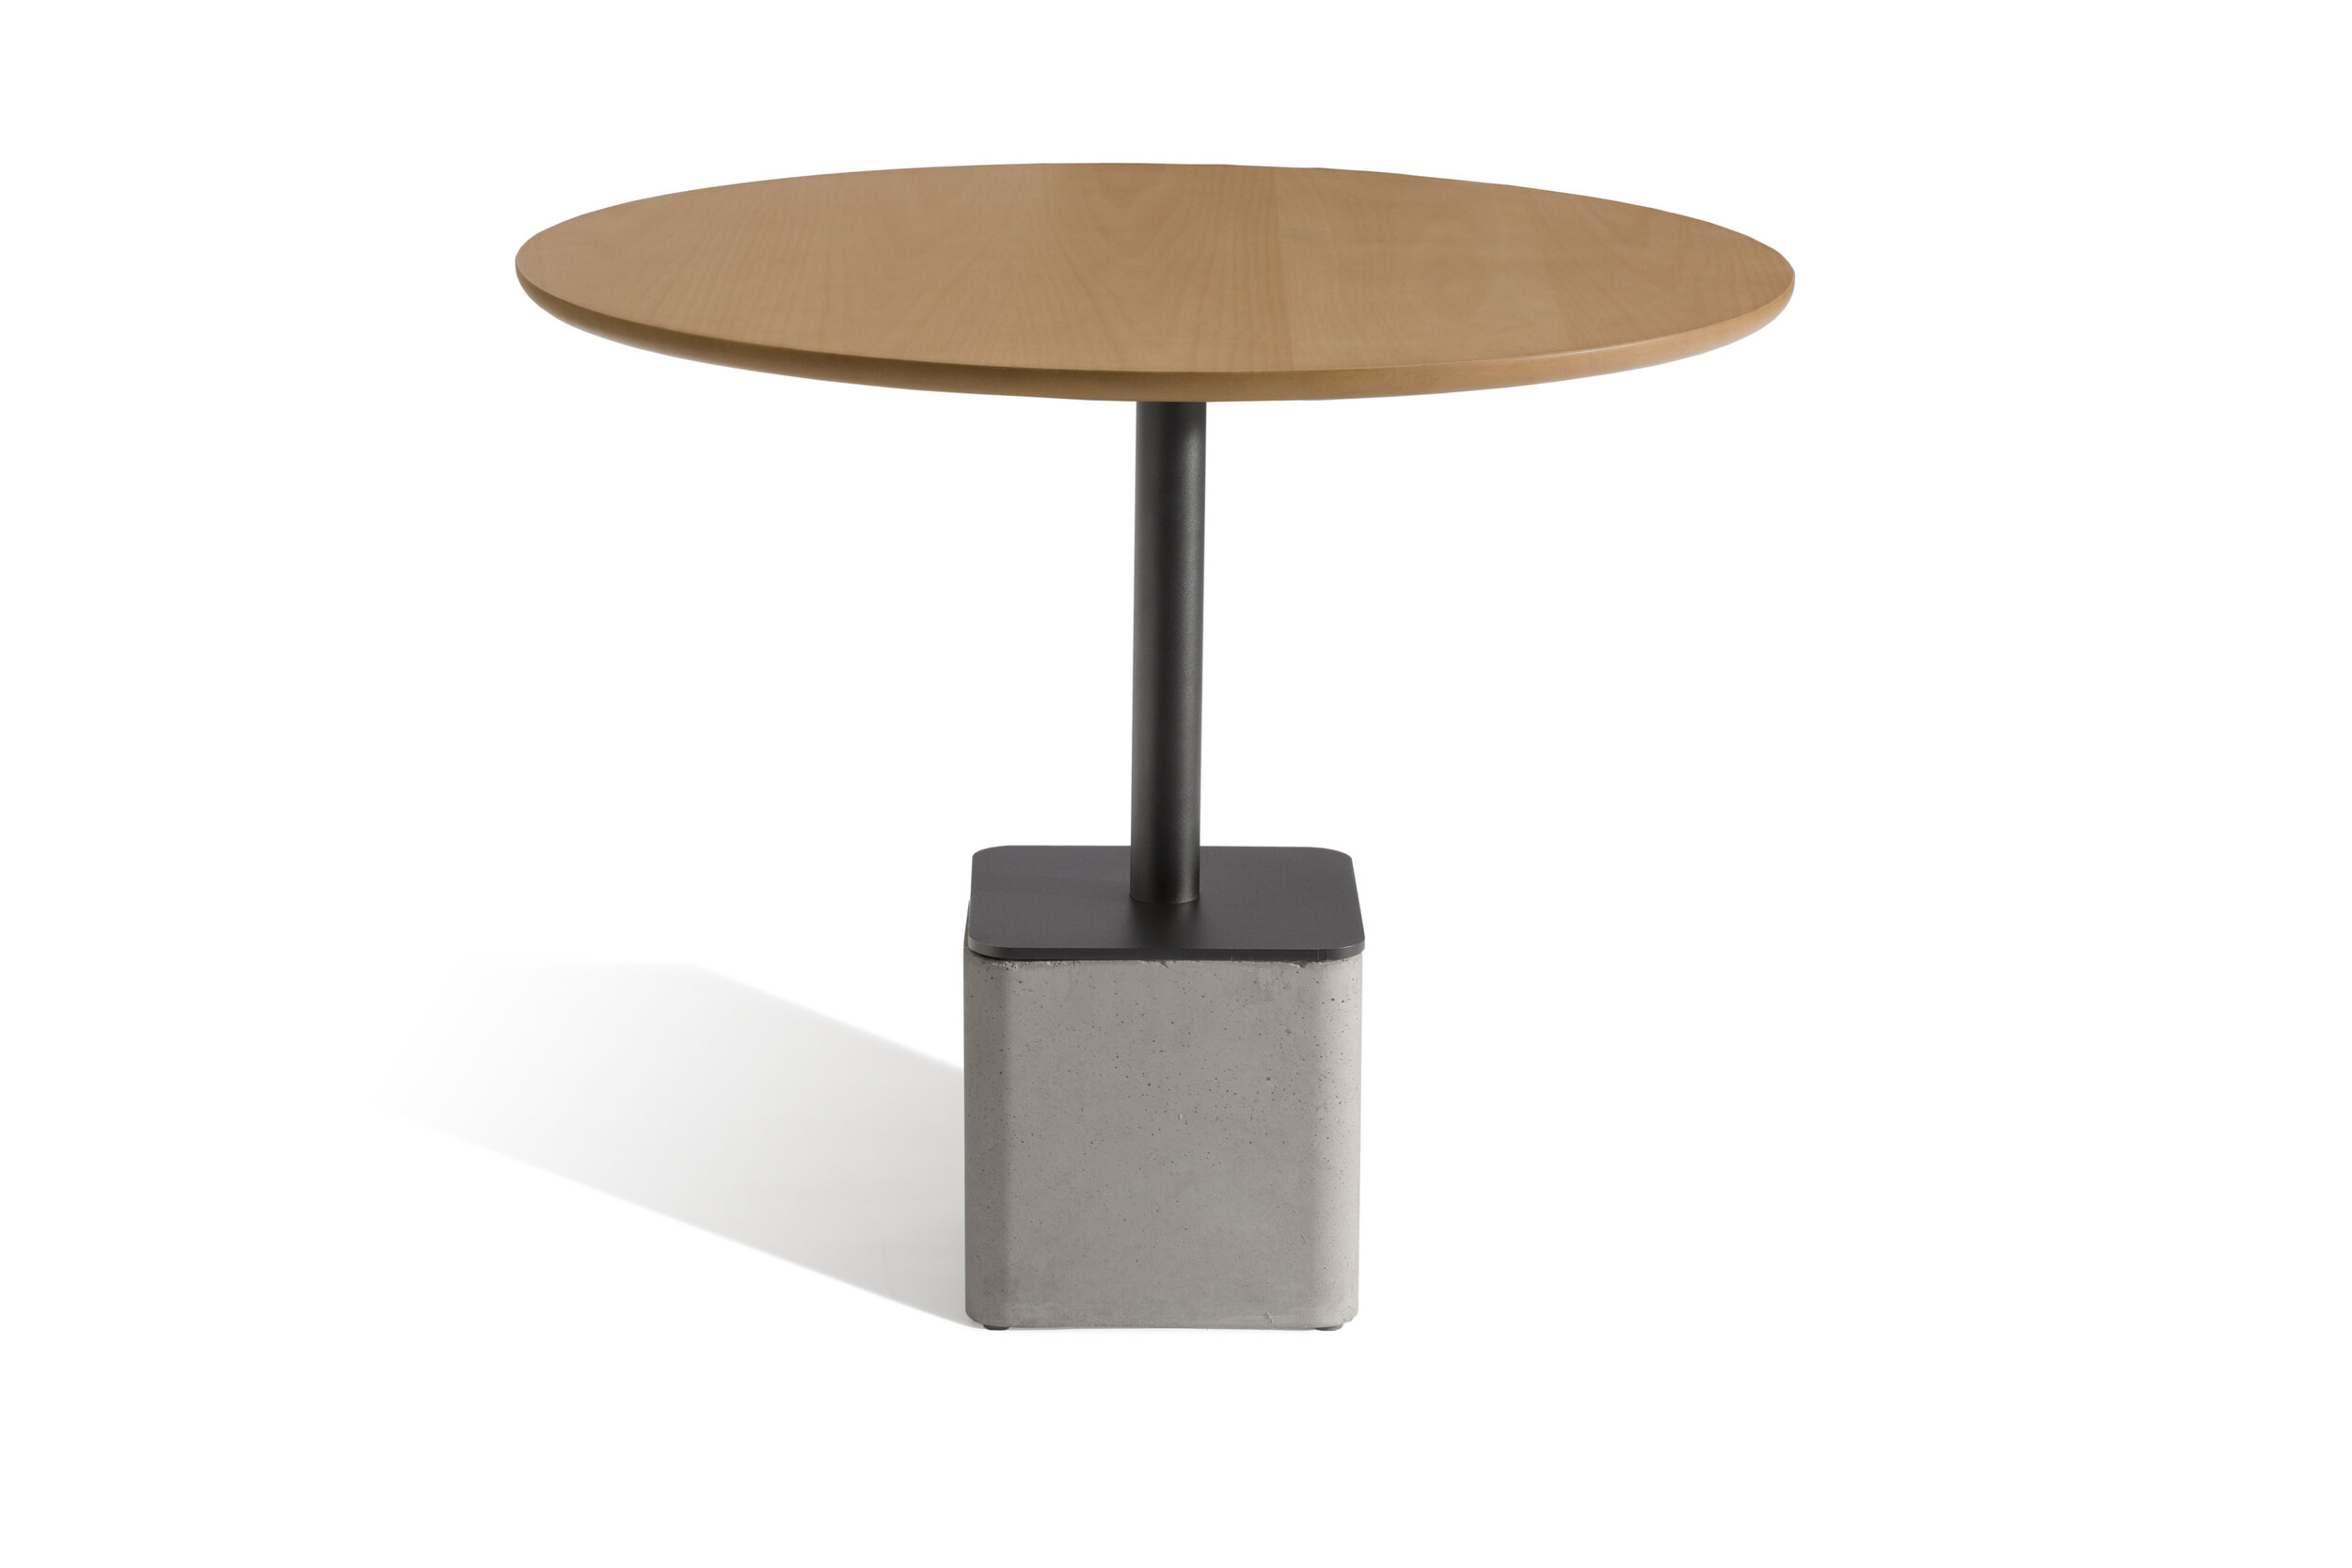 Gus Table with Concrete Base,  starting at $657 List